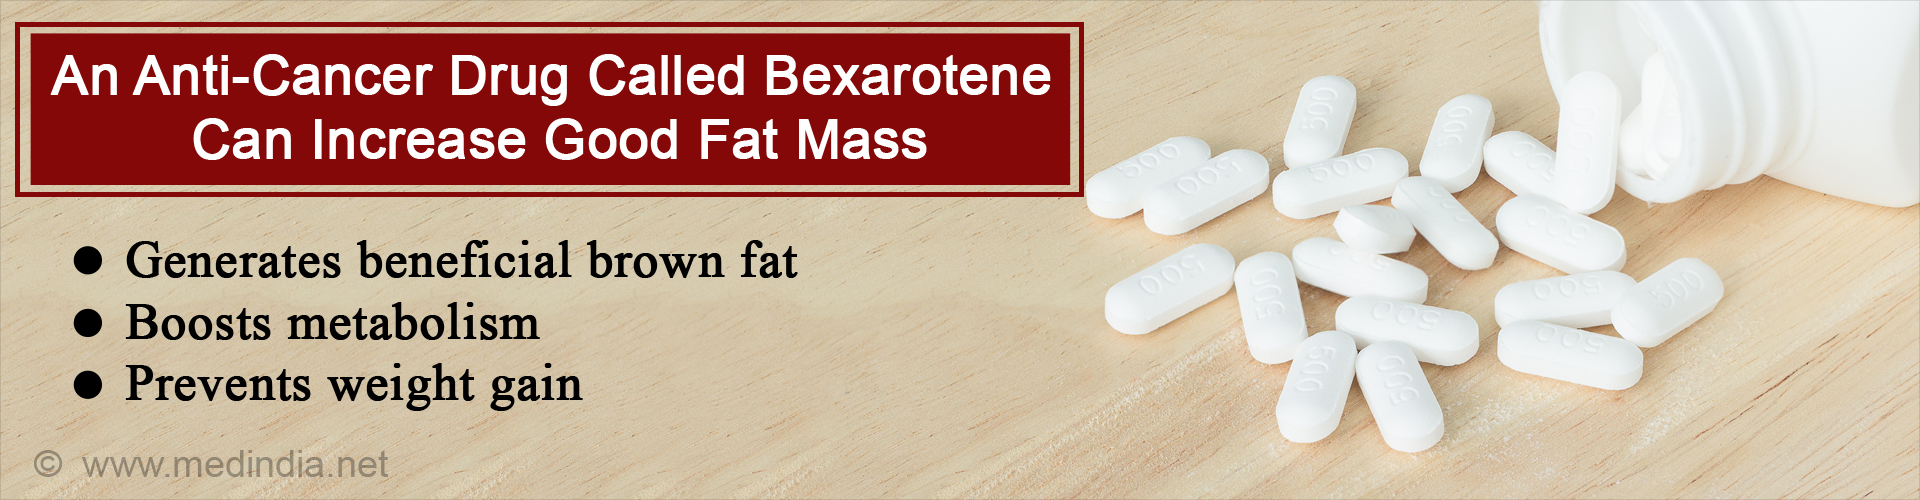 FDA Approved Drug Found To Increase Brown Fat and Lower Weight Gain